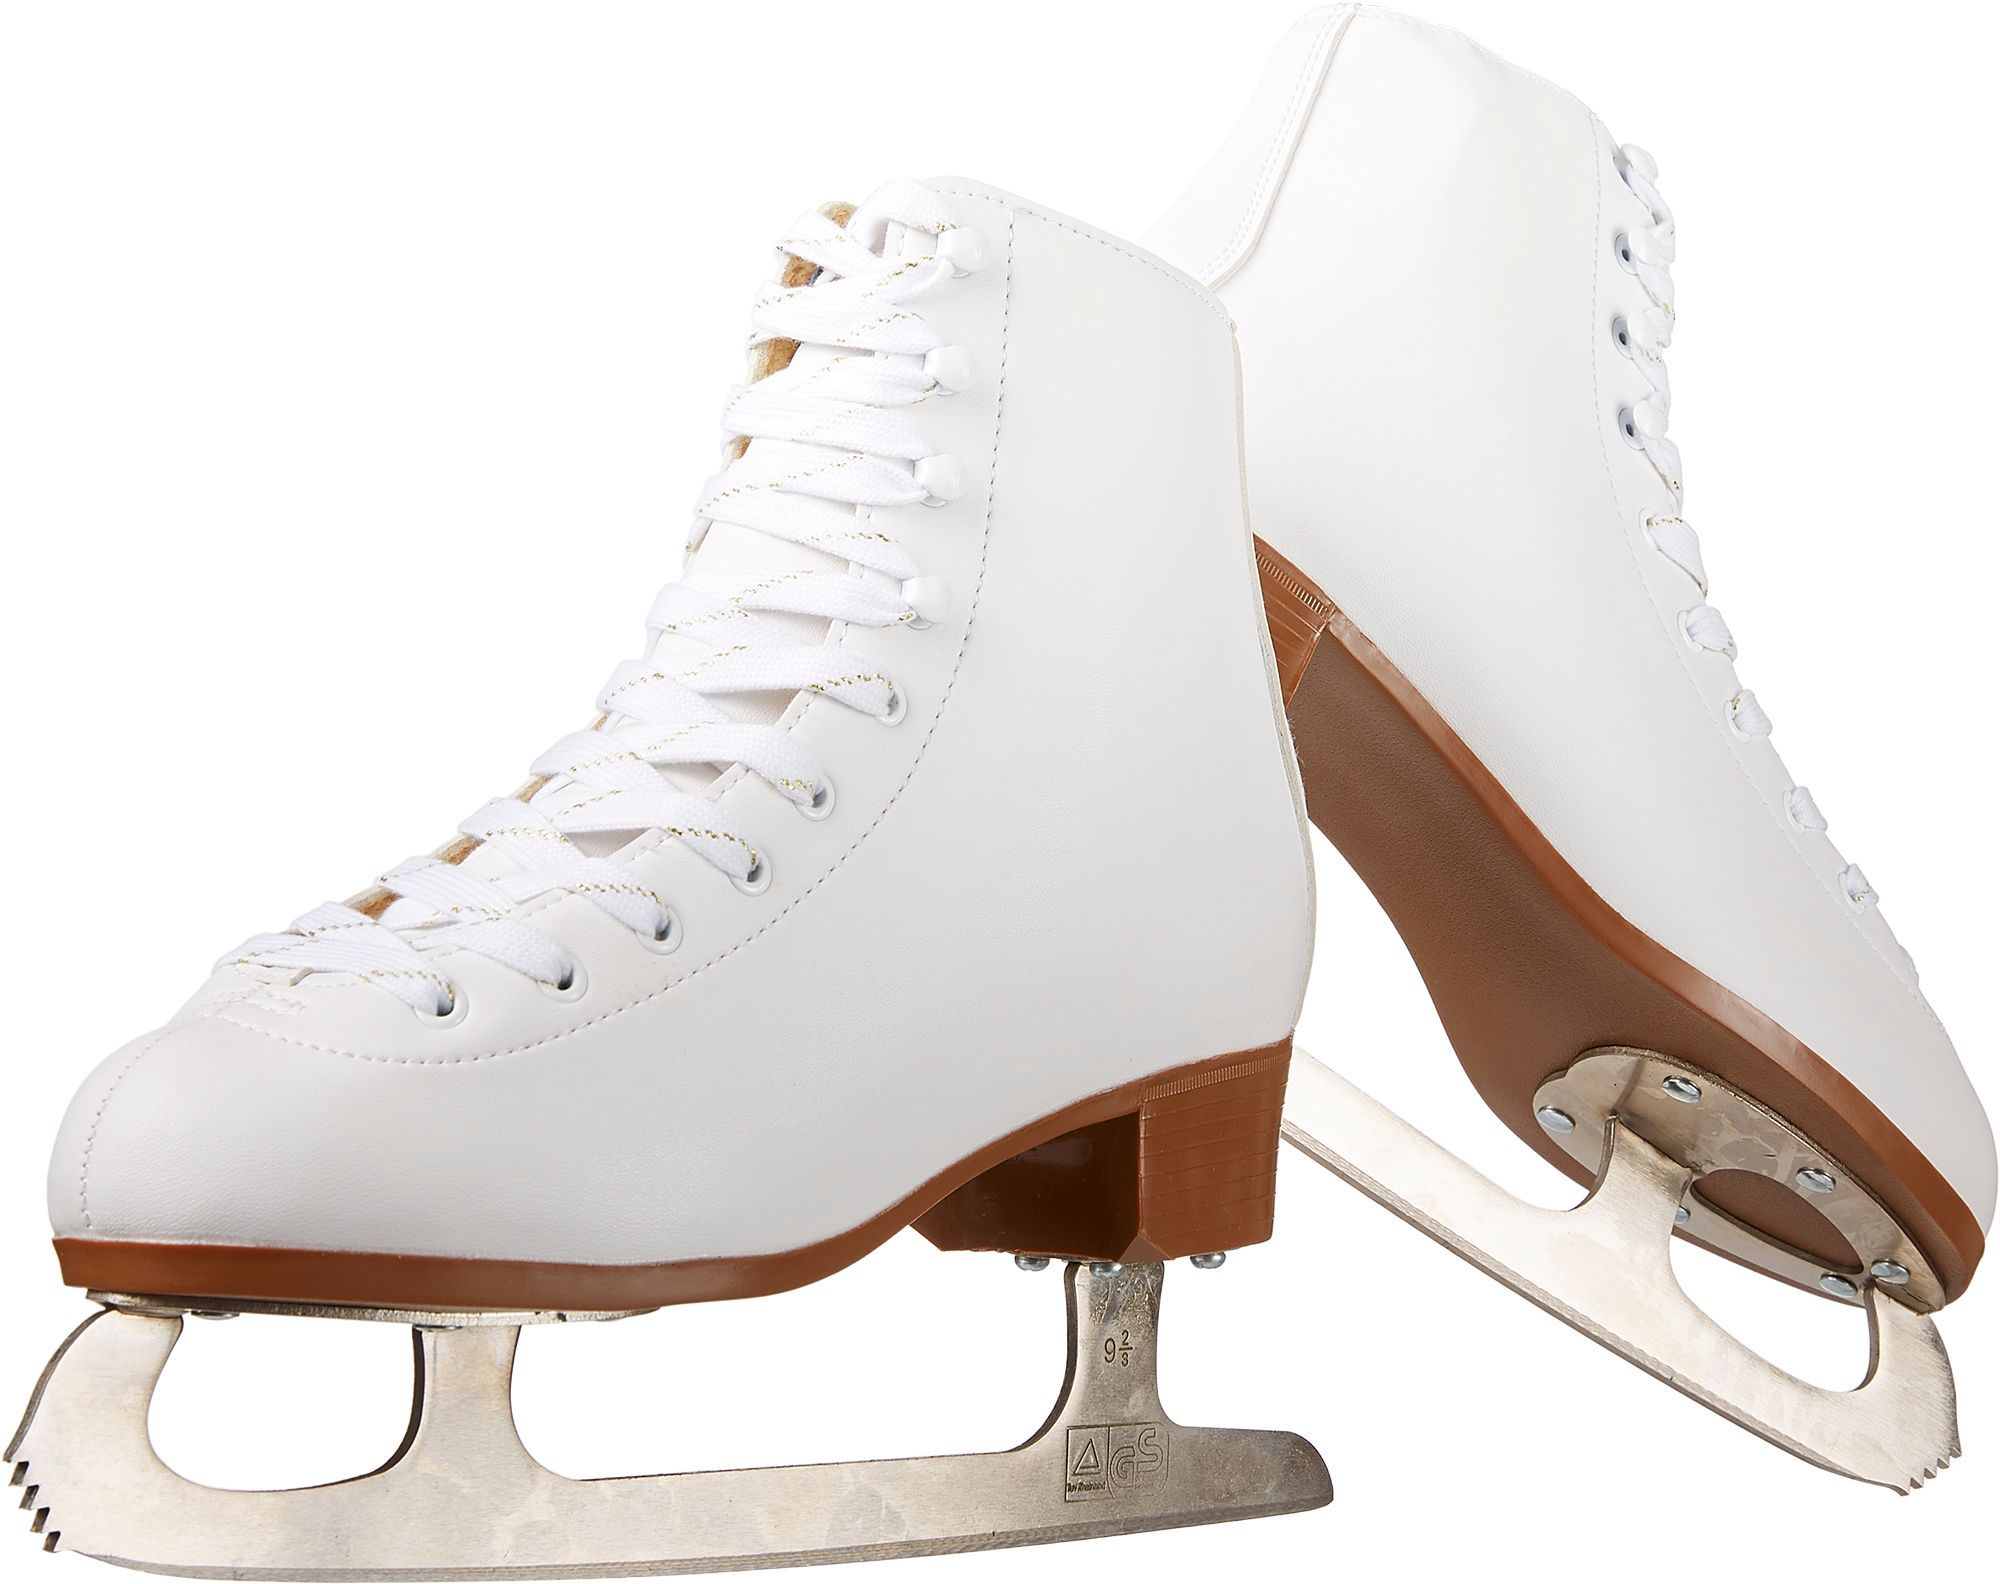 Dbx Women S Traditional Ice Skate 20 In 2020 Ice Skating Skating Outfits Skate Shoes